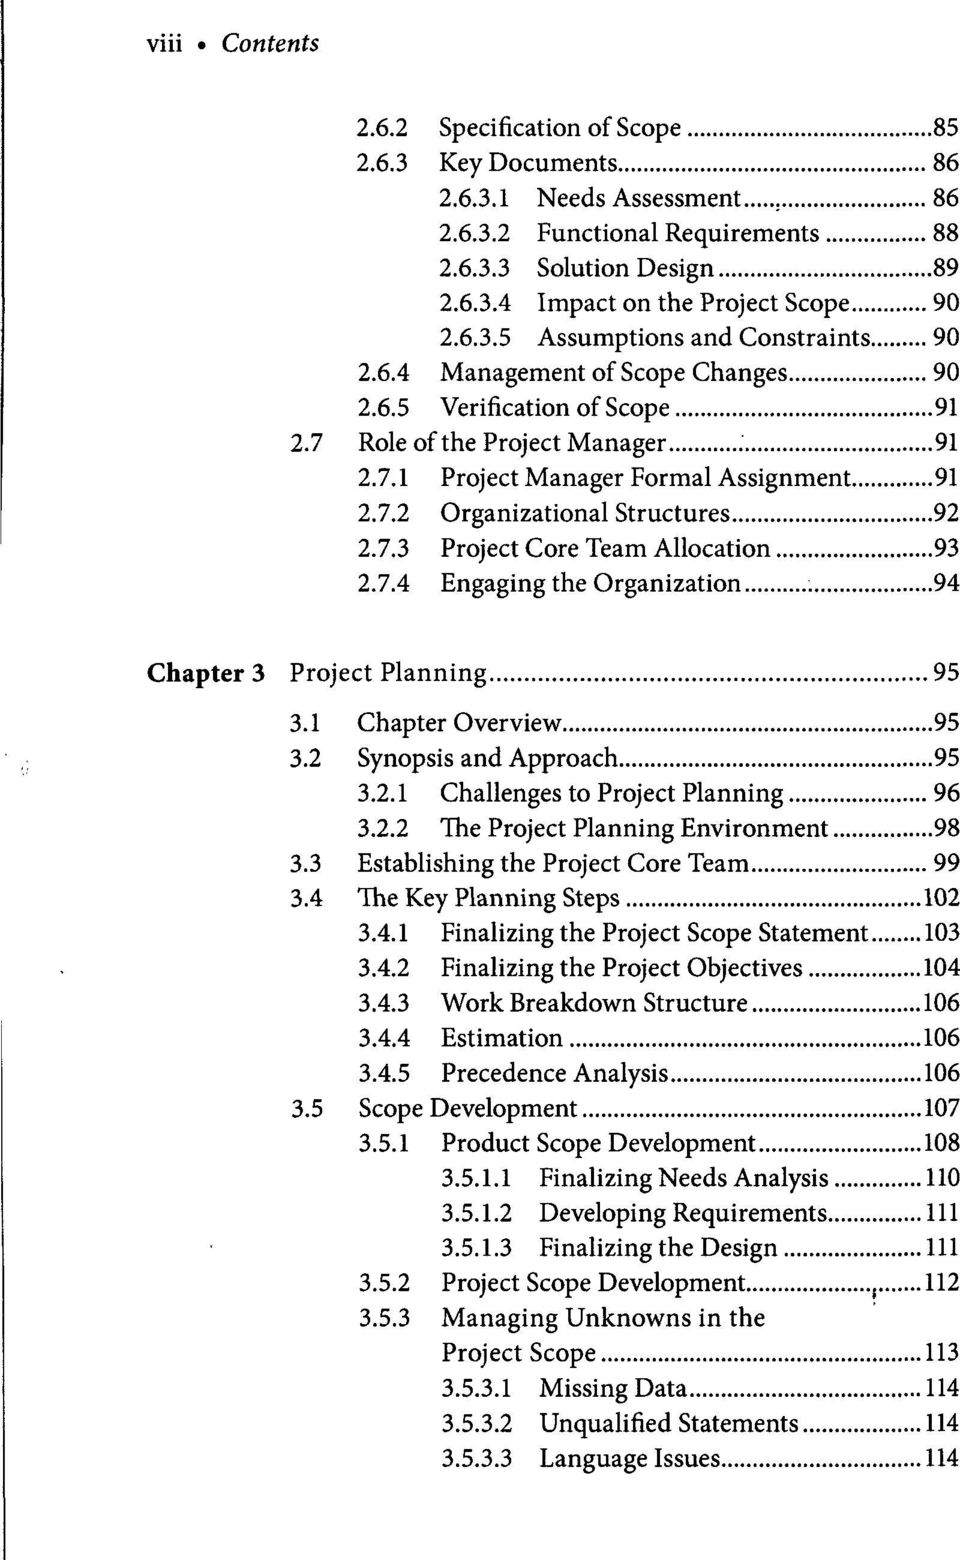 7.3 Project Core Team Allocation 93 2.7.4 Engaging the Organization 94 Chapter 3 Project Planning 95 3.1 Chapter Overview 95 3.2 Synopsis and Approach 95 3.2.1 Challenges to Project Planning 96 3.2.2 The Project Planning Environment 98 3.